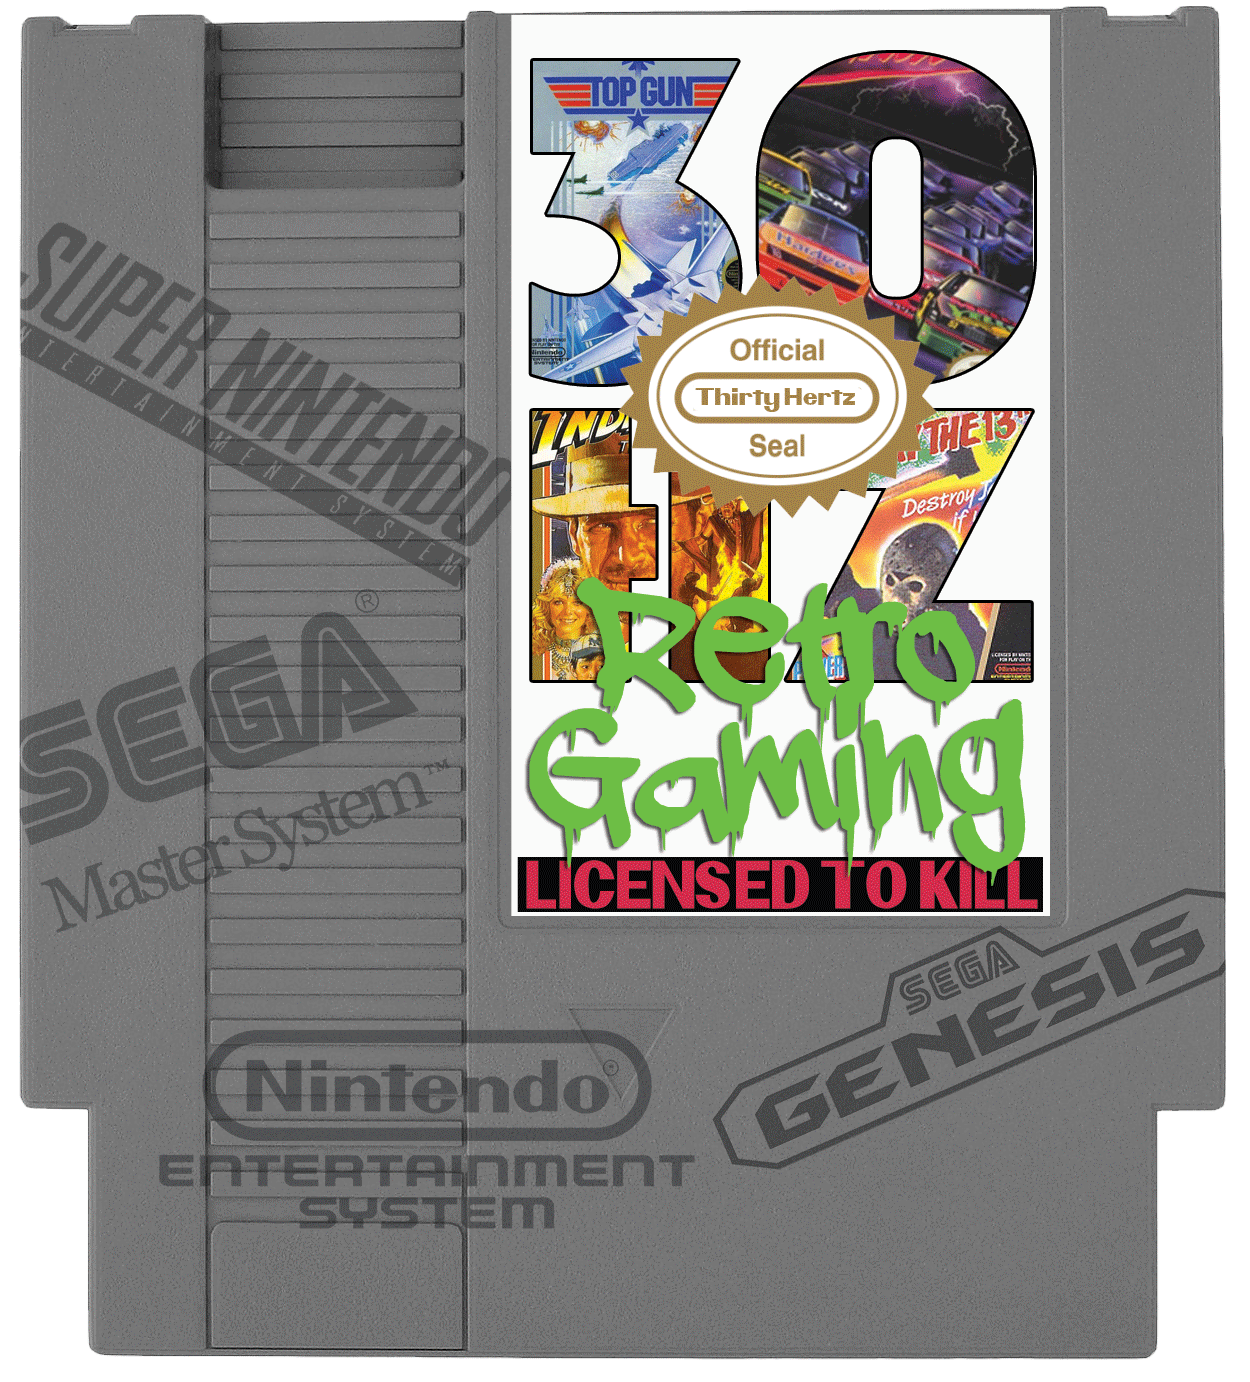 licensed to kill retro licensed gaming